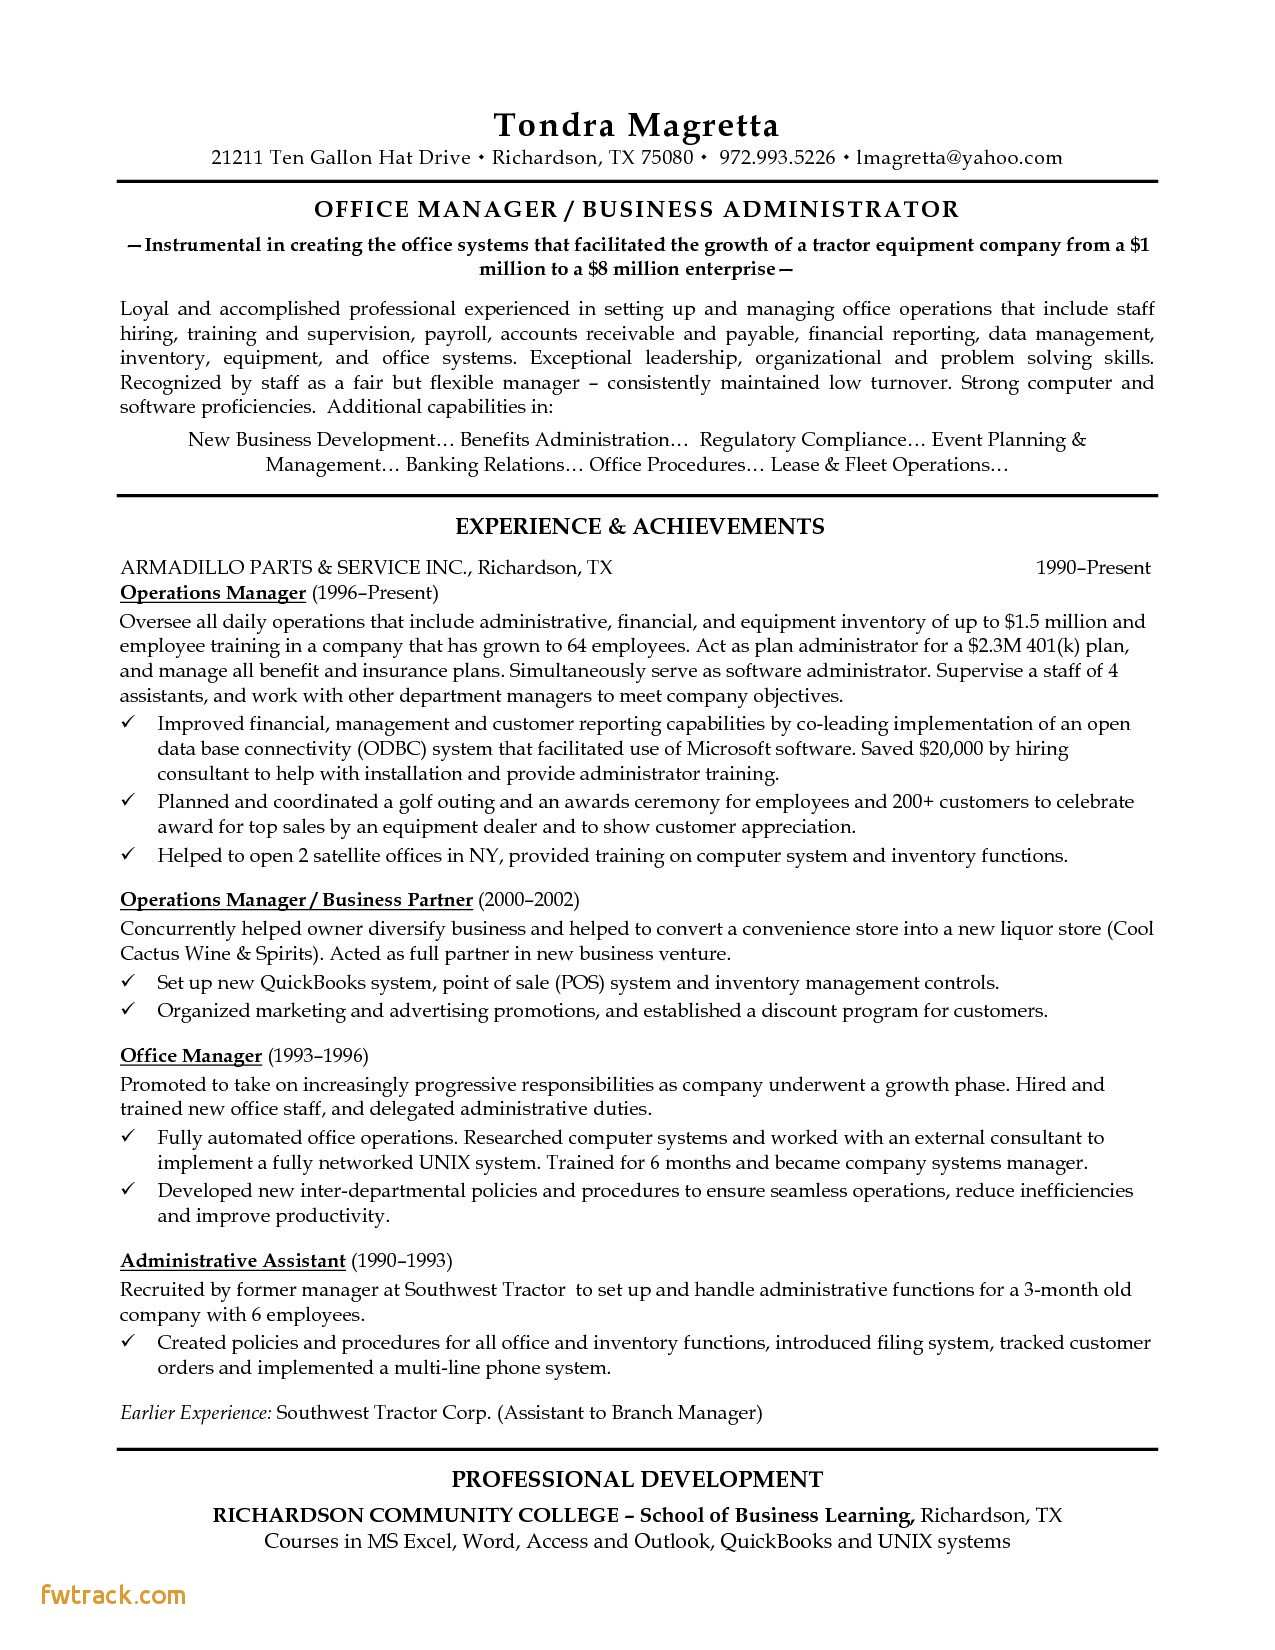 Resume Template for Office Administrator - Resume Examples for Retail Fwtrack Fwtrack